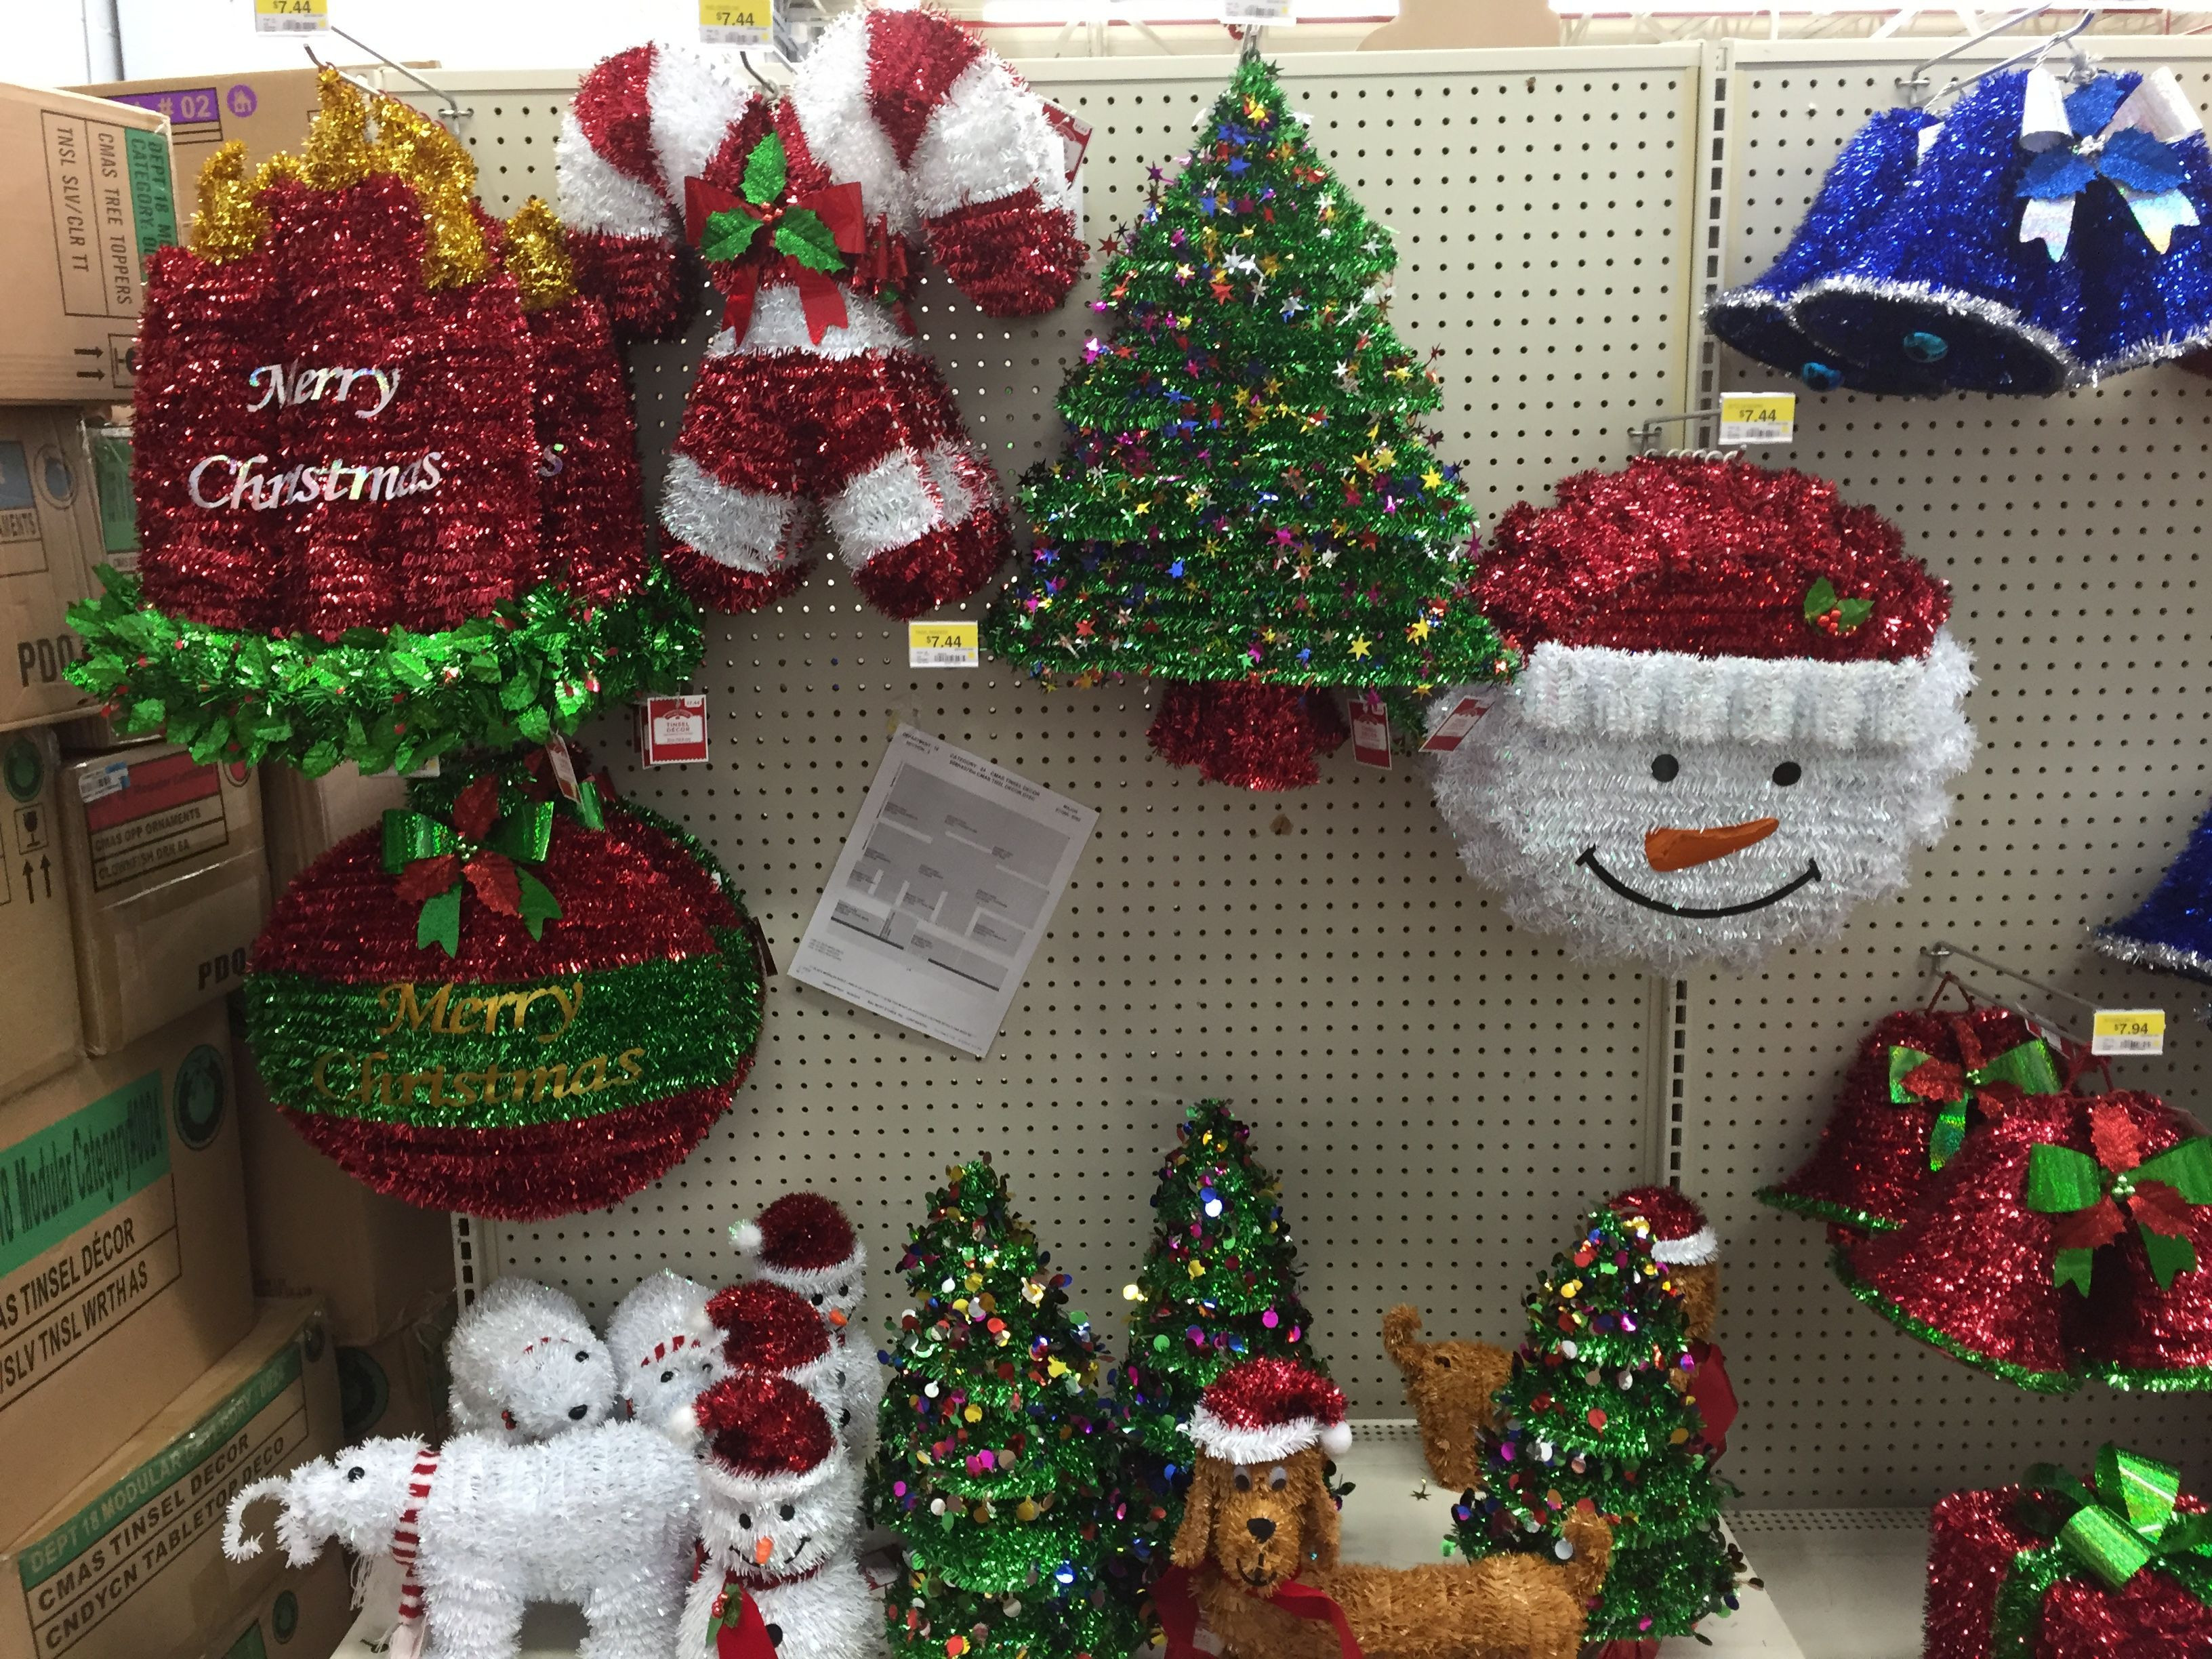 plastic flower vases walmart of decorated for christmas best of walmart christmas decorations a¢eœae' regarding decorated for christmas best of walmart christmas decorations a¢eœae'